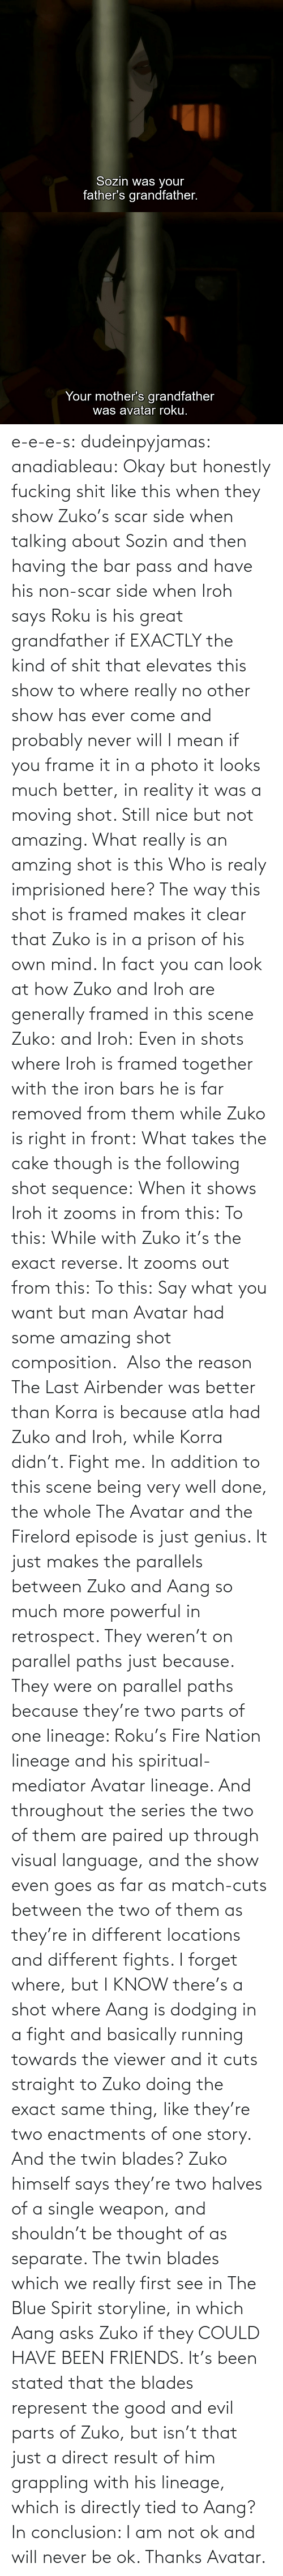 two: e-e-e-s: dudeinpyjamas:   anadiableau: Okay but honestly fucking shit like this when they show Zuko's scar side when talking about Sozin and then having the bar pass and have his non-scar side when Iroh says Roku is his great grandfather if EXACTLY the kind of shit that elevates this show to where really no other show has ever come and probably never will I mean if you frame it in a photo it looks much better, in reality it was a moving shot. Still nice but not amazing. What really is an amzing shot is this Who is realy imprisioned here? The way this shot is framed makes it clear that Zuko is in a prison of his own mind. In fact you can look at how Zuko and Iroh are generally framed in this scene Zuko: and Iroh: Even in shots where Iroh is framed together with the iron bars he is far removed from them while Zuko is right in front:  What takes the cake though is the following shot sequence: When it shows Iroh it zooms in from this: To this: While with Zuko it's the exact reverse. It zooms out from this: To this: Say what you want but man Avatar had some amazing shot composition.   Also the reason The Last Airbender was better than Korra is because atla had Zuko and Iroh, while Korra didn't. Fight me.    In addition to this scene being very well done, the whole The Avatar and the Firelord episode is just genius.  It just makes the parallels between Zuko and Aang so much more powerful in retrospect.  They weren't on parallel paths just because.  They were on parallel paths because they're two parts of one lineage: Roku's Fire Nation lineage and his spiritual-mediator Avatar lineage.  And throughout the series the two of them are paired up through visual language, and the show even goes as far as match-cuts between the two of them as they're in different locations and different fights.  I forget where, but I KNOW there's a shot where Aang is dodging in a fight and basically running towards the viewer and it cuts straight to Zuko doing the exact same thing, like they're two enactments of one story.   And the twin blades?  Zuko himself says they're two halves of a single weapon, and shouldn't be thought of as separate.  The twin blades which we really first see in The Blue Spirit storyline, in which Aang asks Zuko if they COULD HAVE BEEN FRIENDS.  It's been stated that the blades represent the good and evil parts of Zuko, but isn't that just a direct result of him grappling with his lineage, which is directly tied to Aang? In conclusion: I am not ok and will never be ok.  Thanks Avatar.